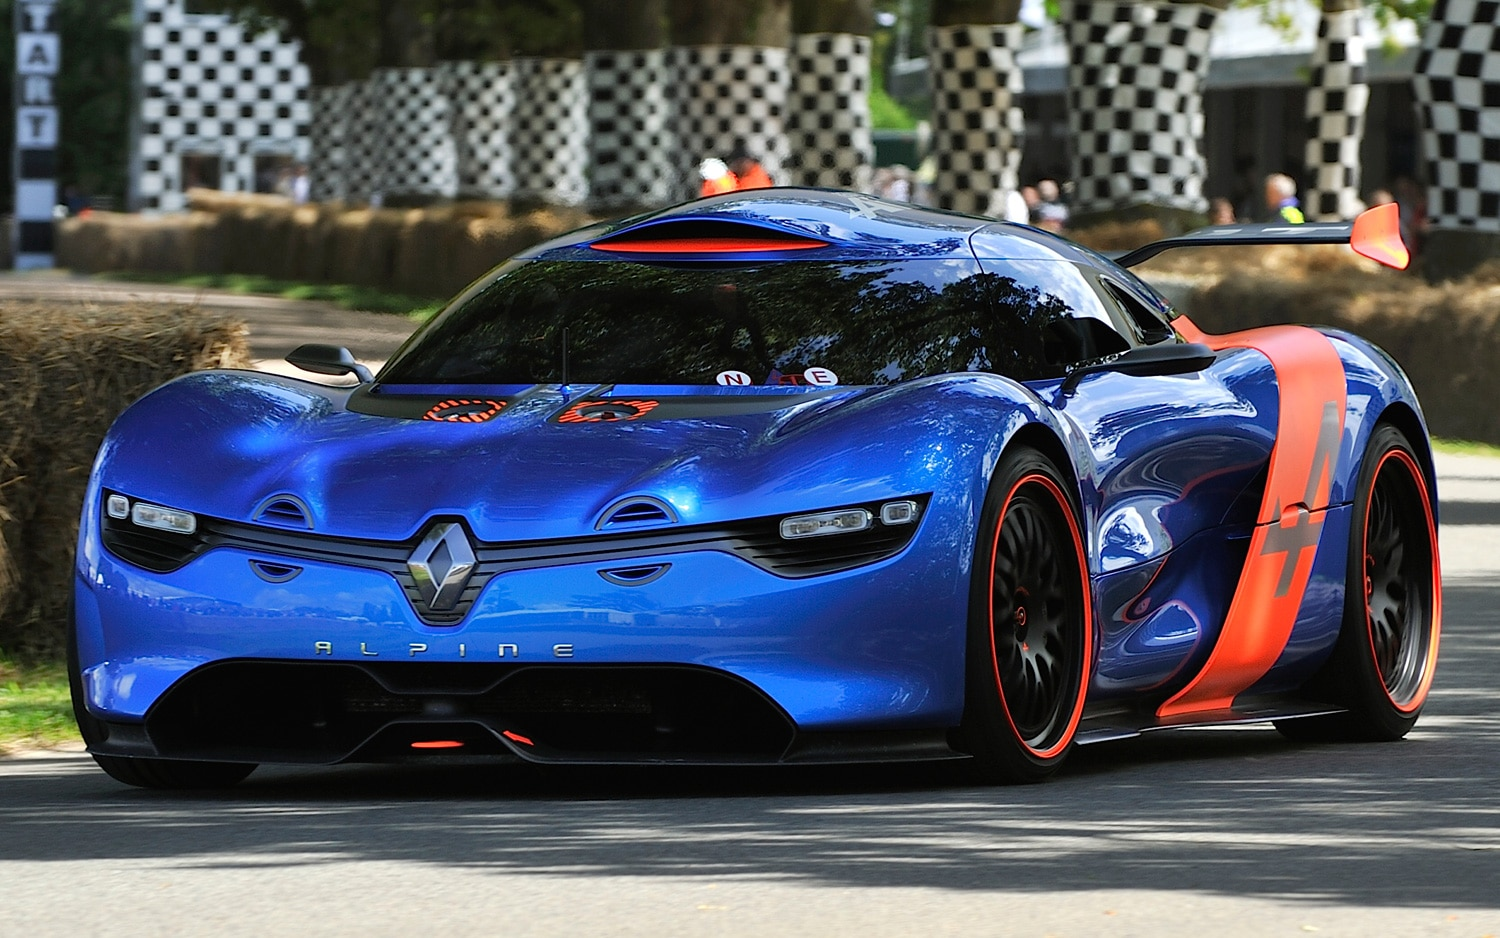 Renault, Caterham Partner To Build Sports Cars, Revive